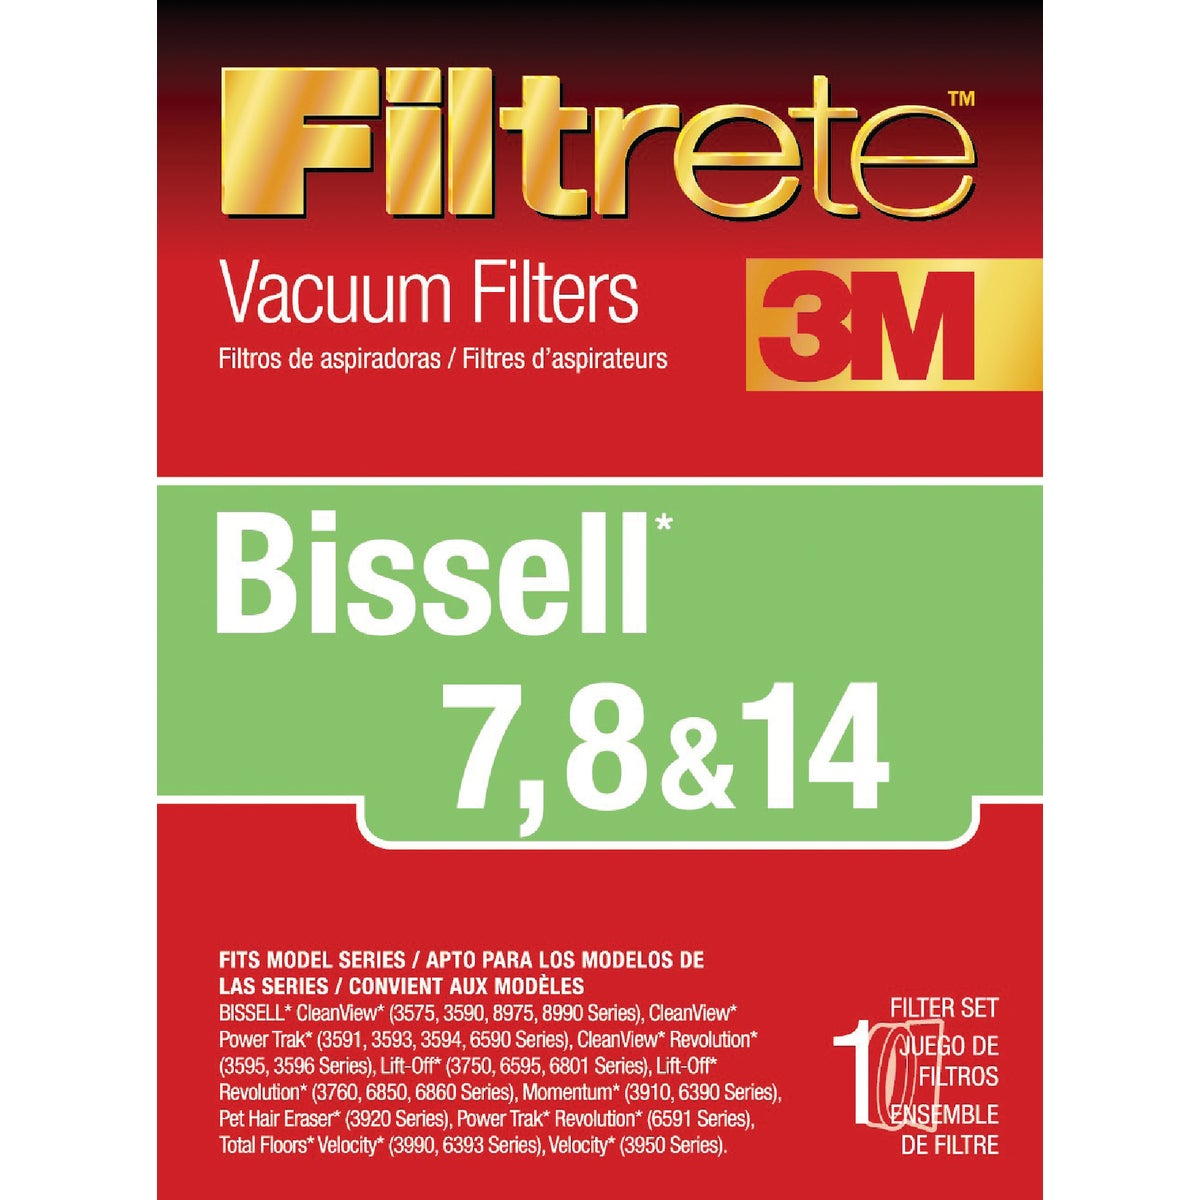 BISSELL VACUUM FILTER - 66878A-4 by Electrolux Home Care